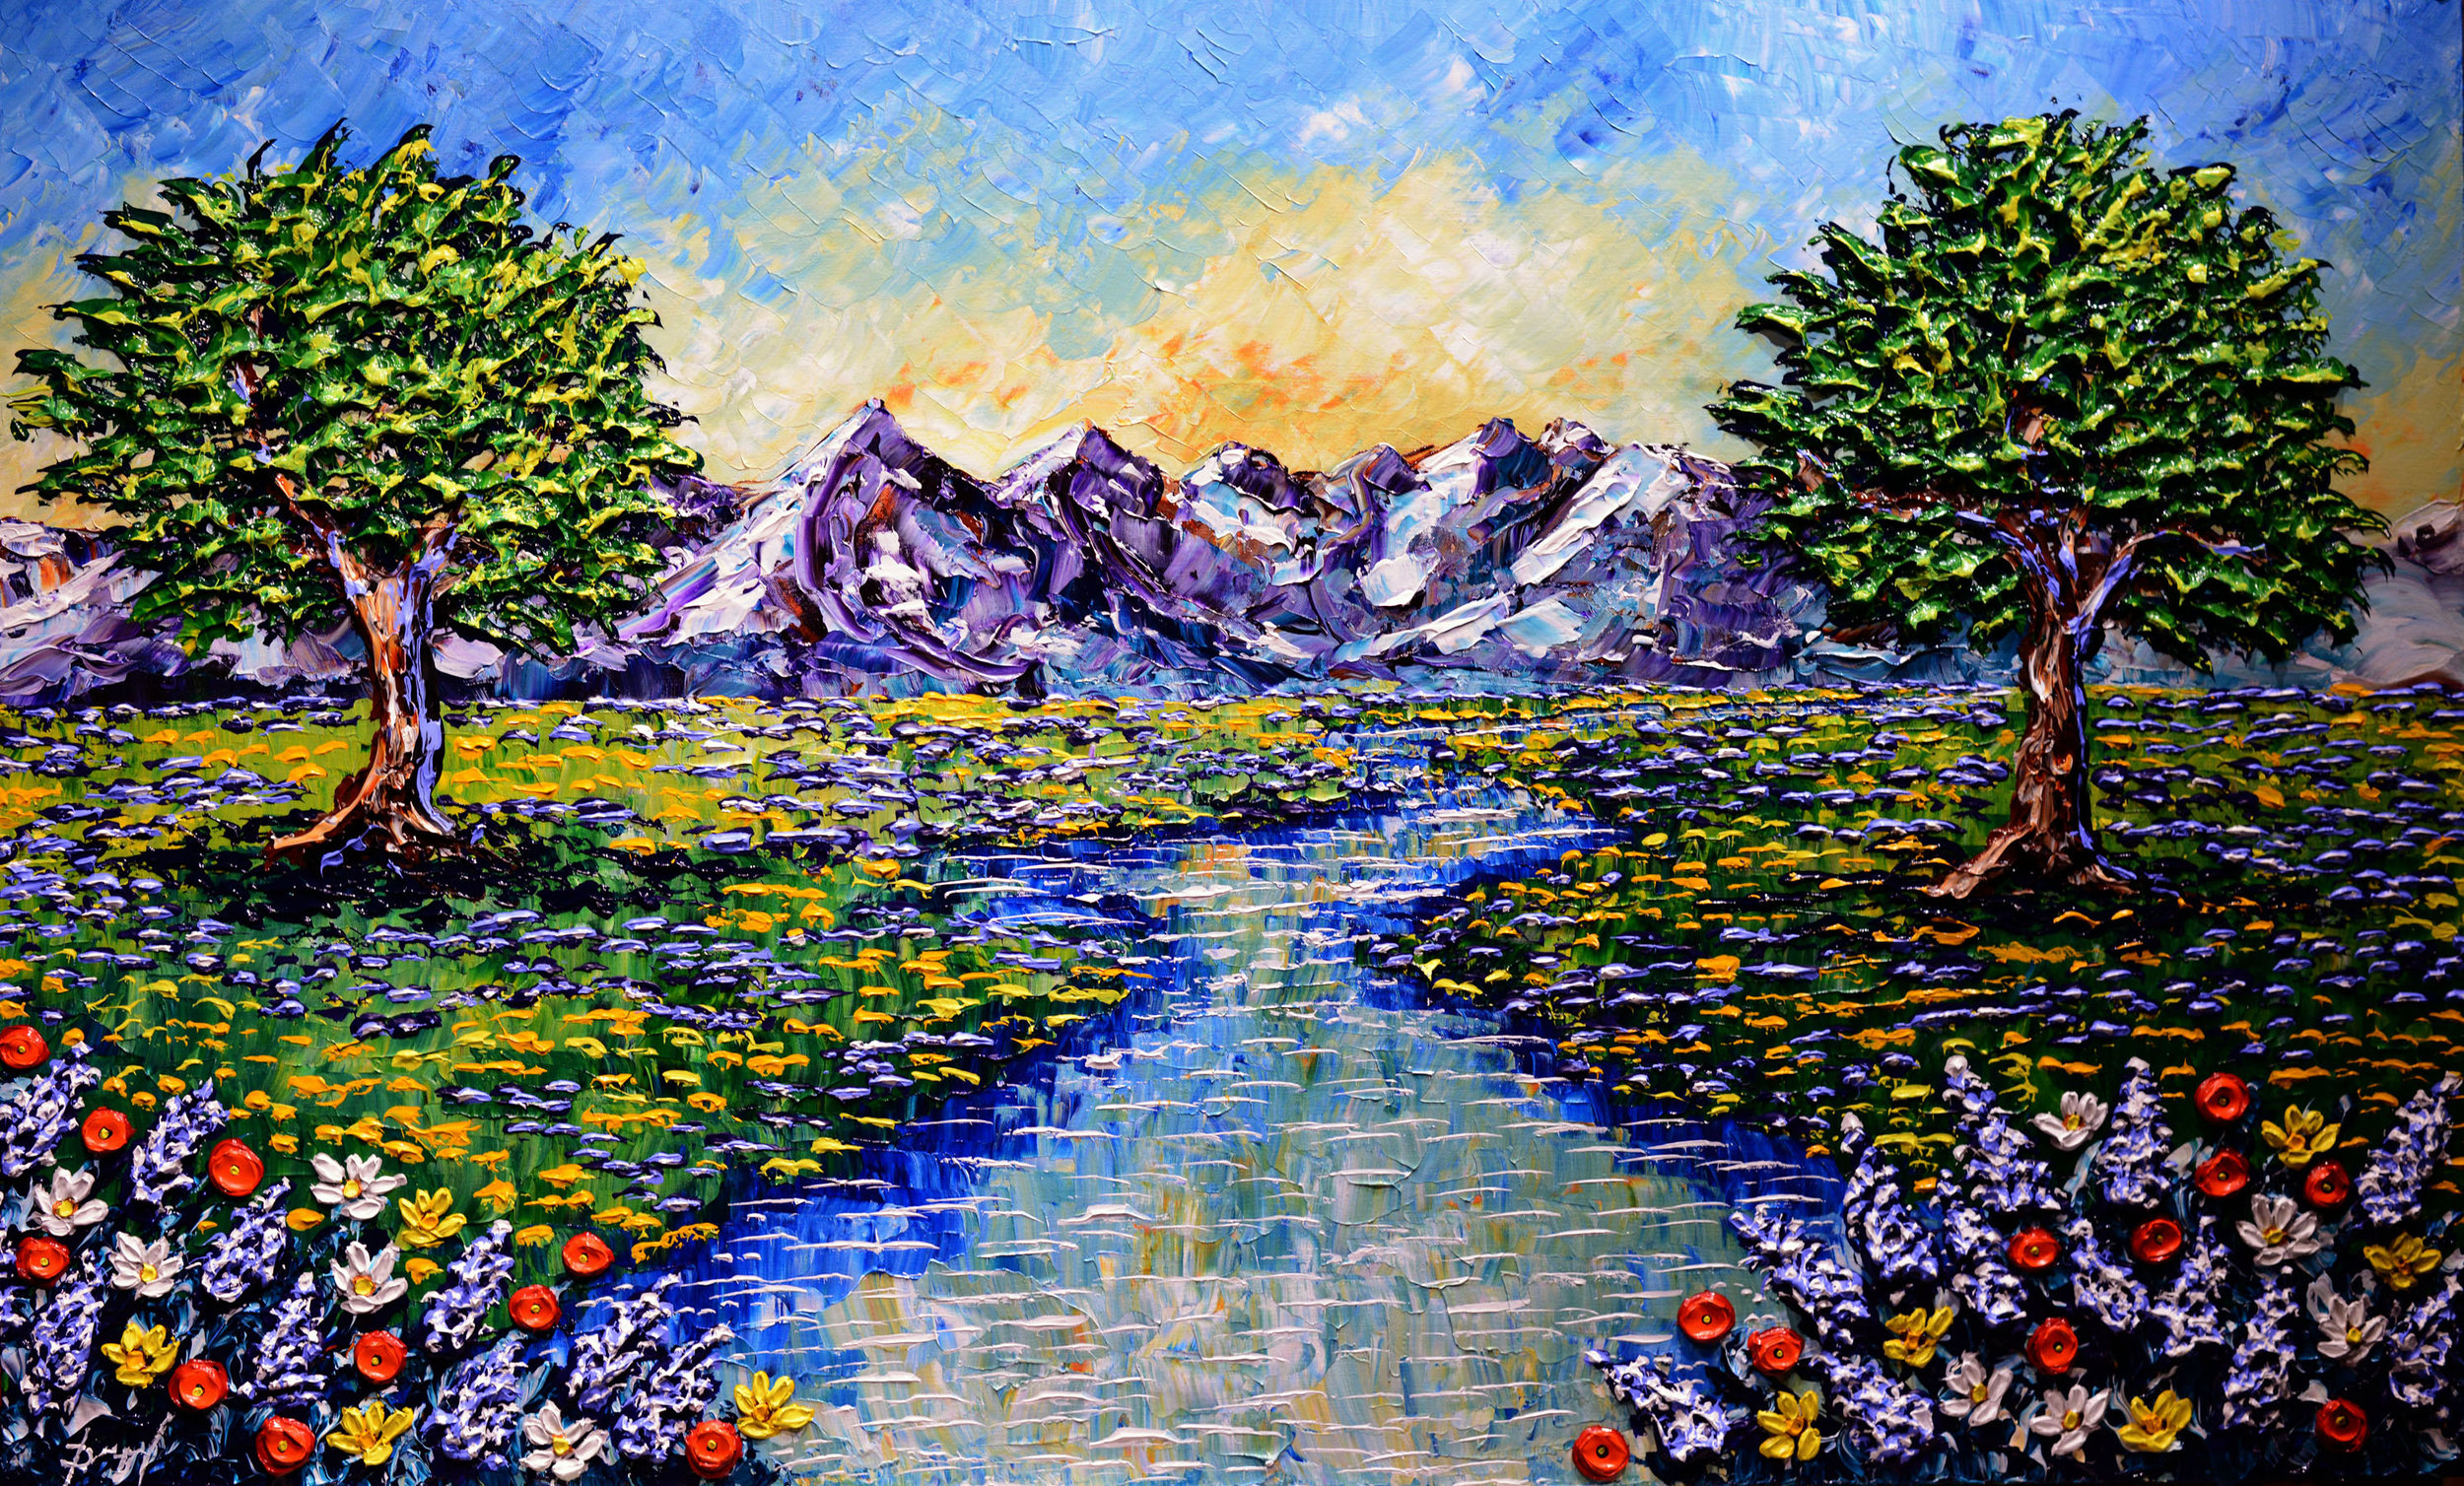 Colorful-Stream-of-the-Mountains-36x60.jpg